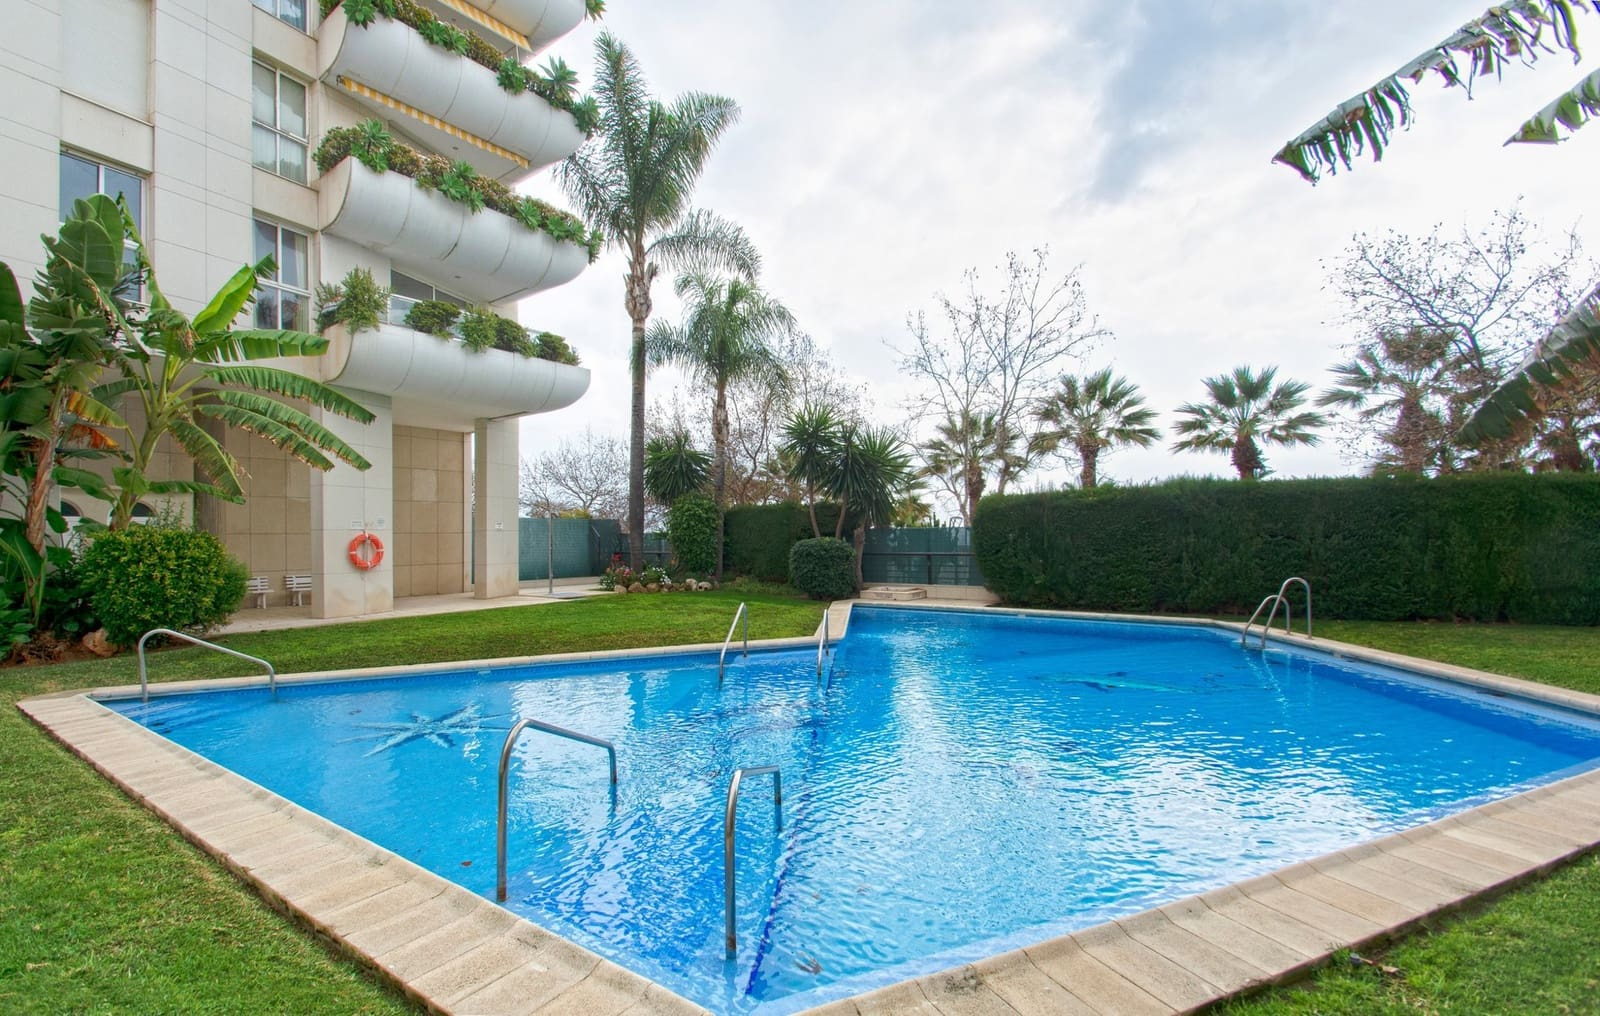 2 bedroom Apartment for sale in Marbella with pool garage - € 370,000 (Ref: 5126652)